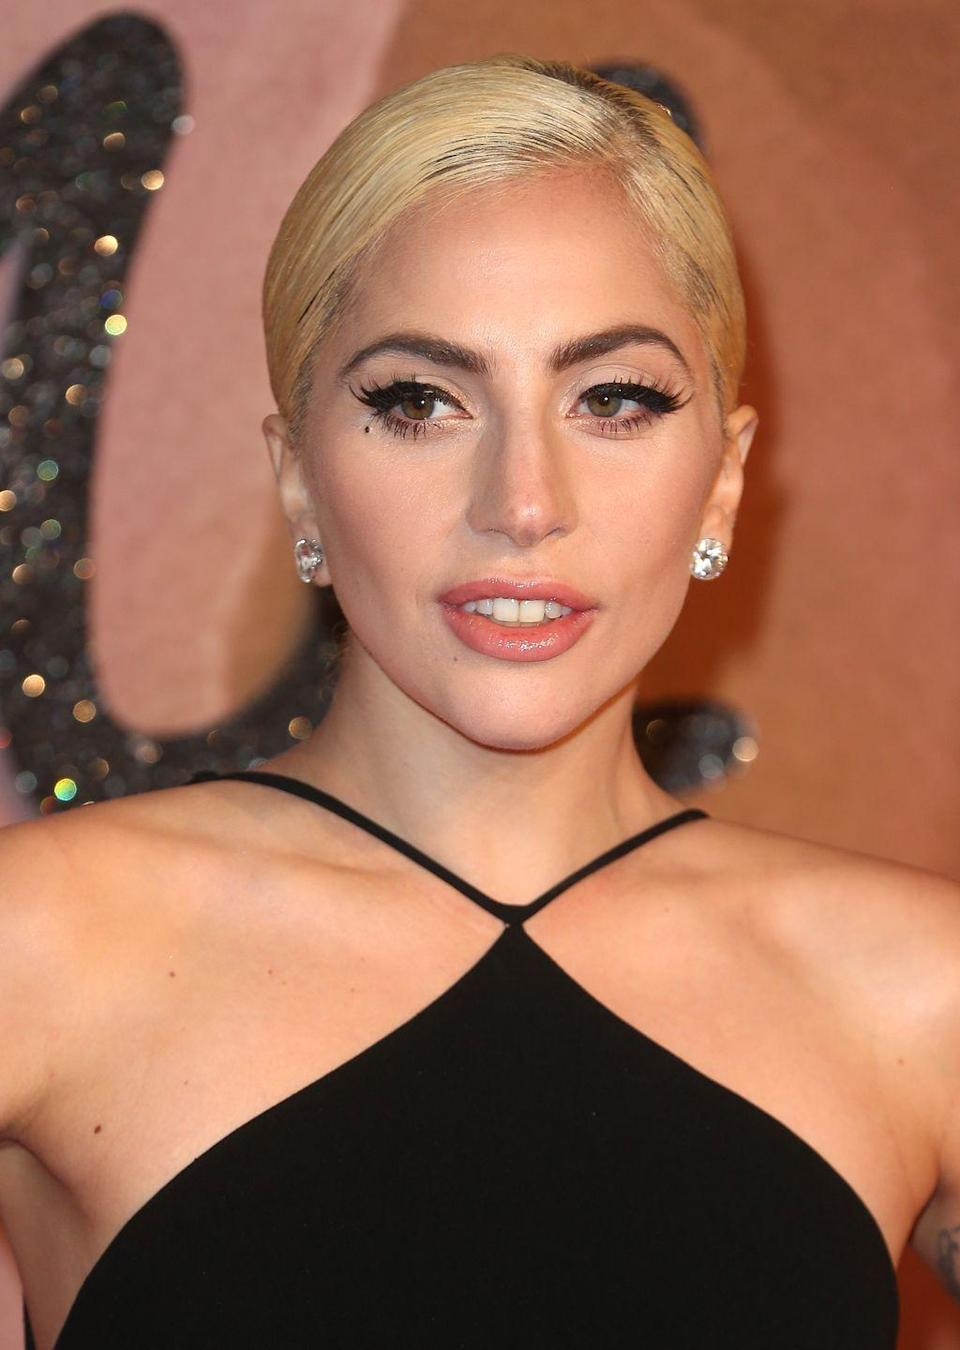 <p><strong>Real name: </strong>Stefani Joanne Angelina Germanotta</p>